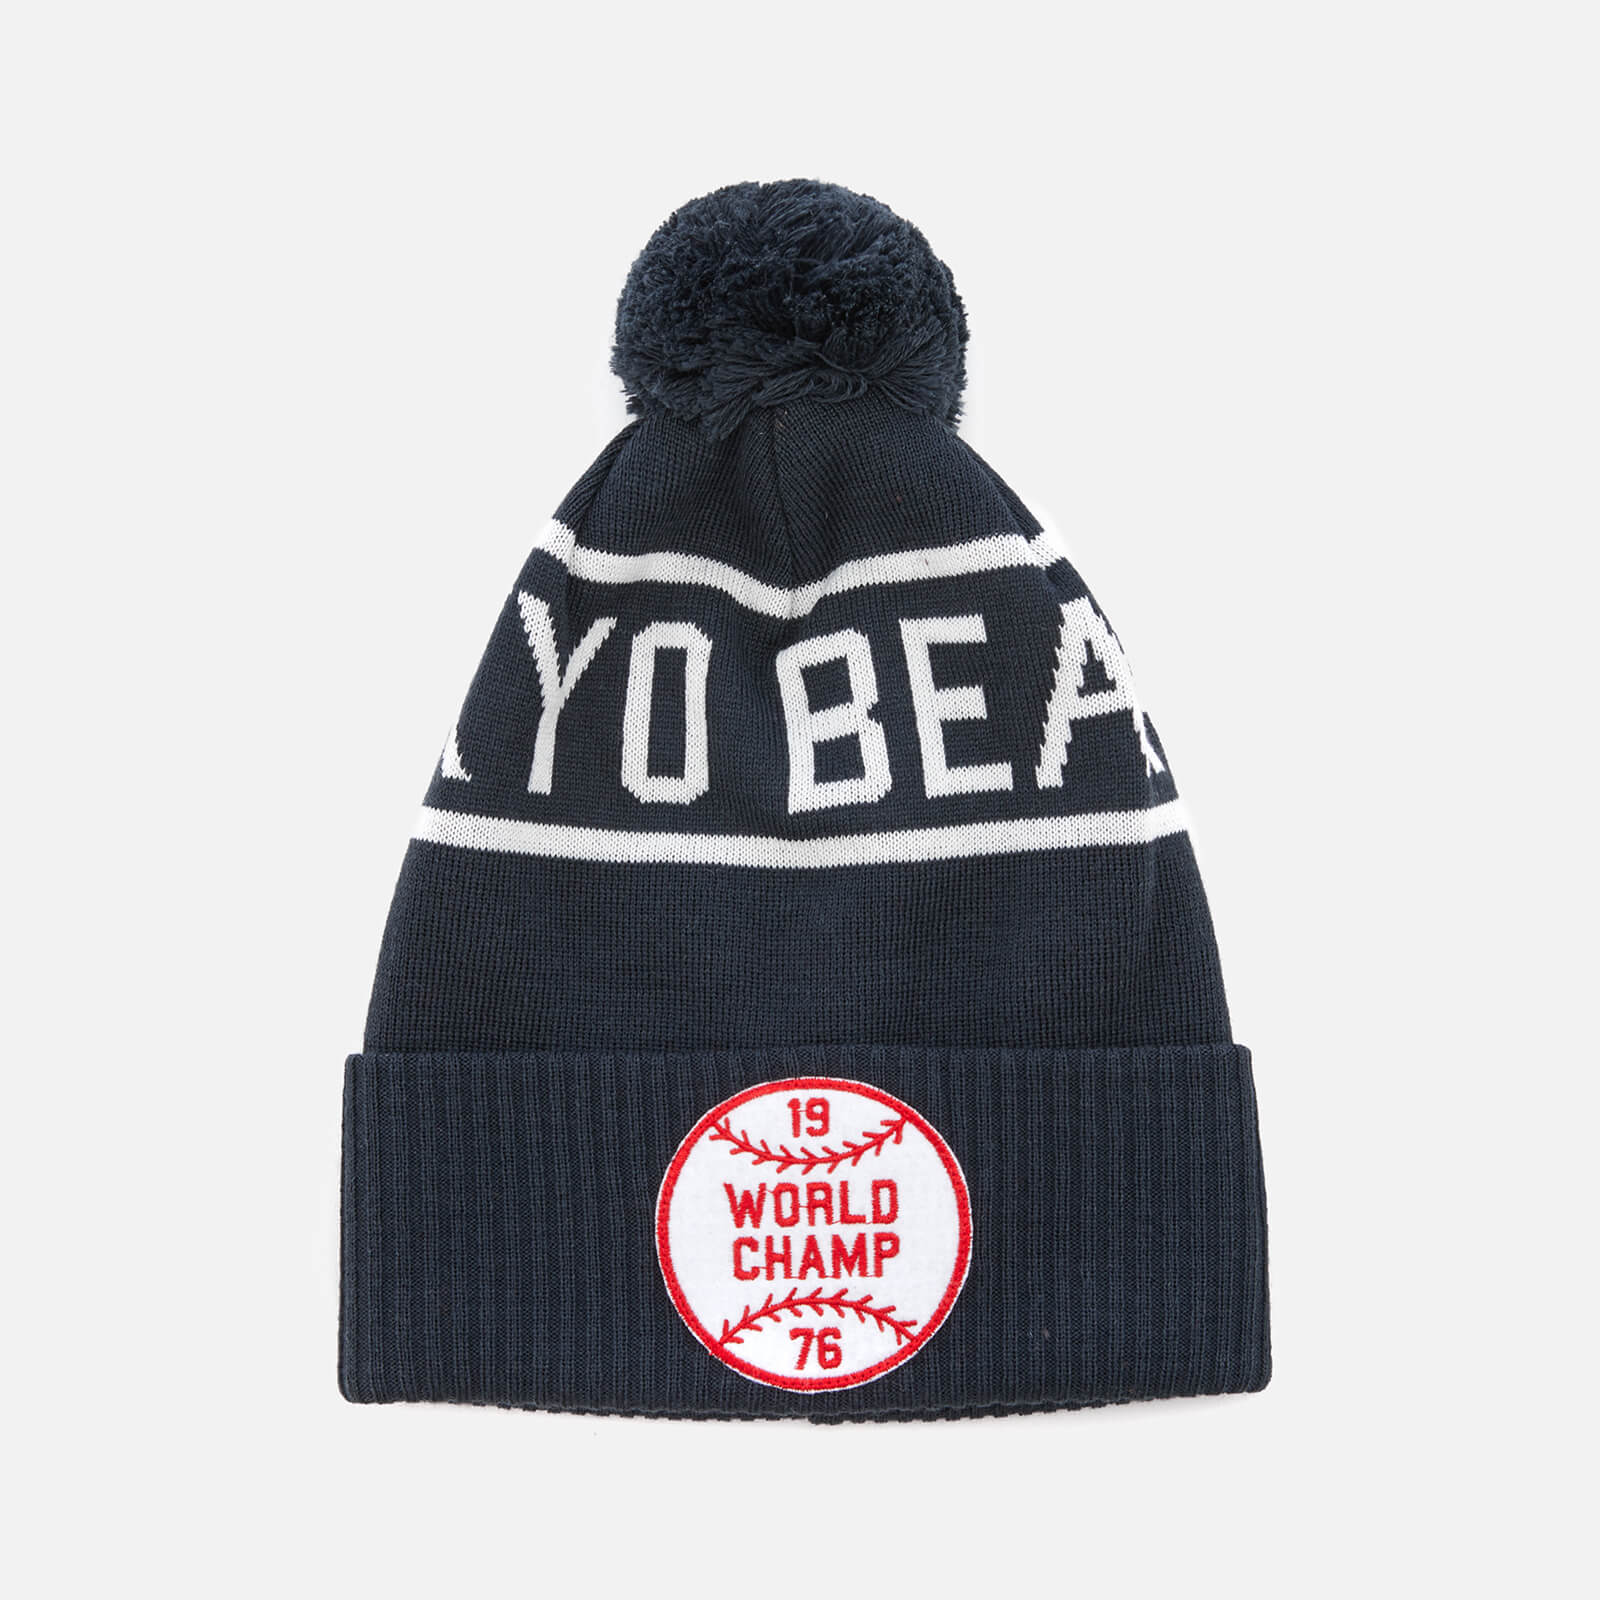 39e280daa2899 Champion X Beams Men s Beanie Cap - Blue - Free UK Delivery over £50